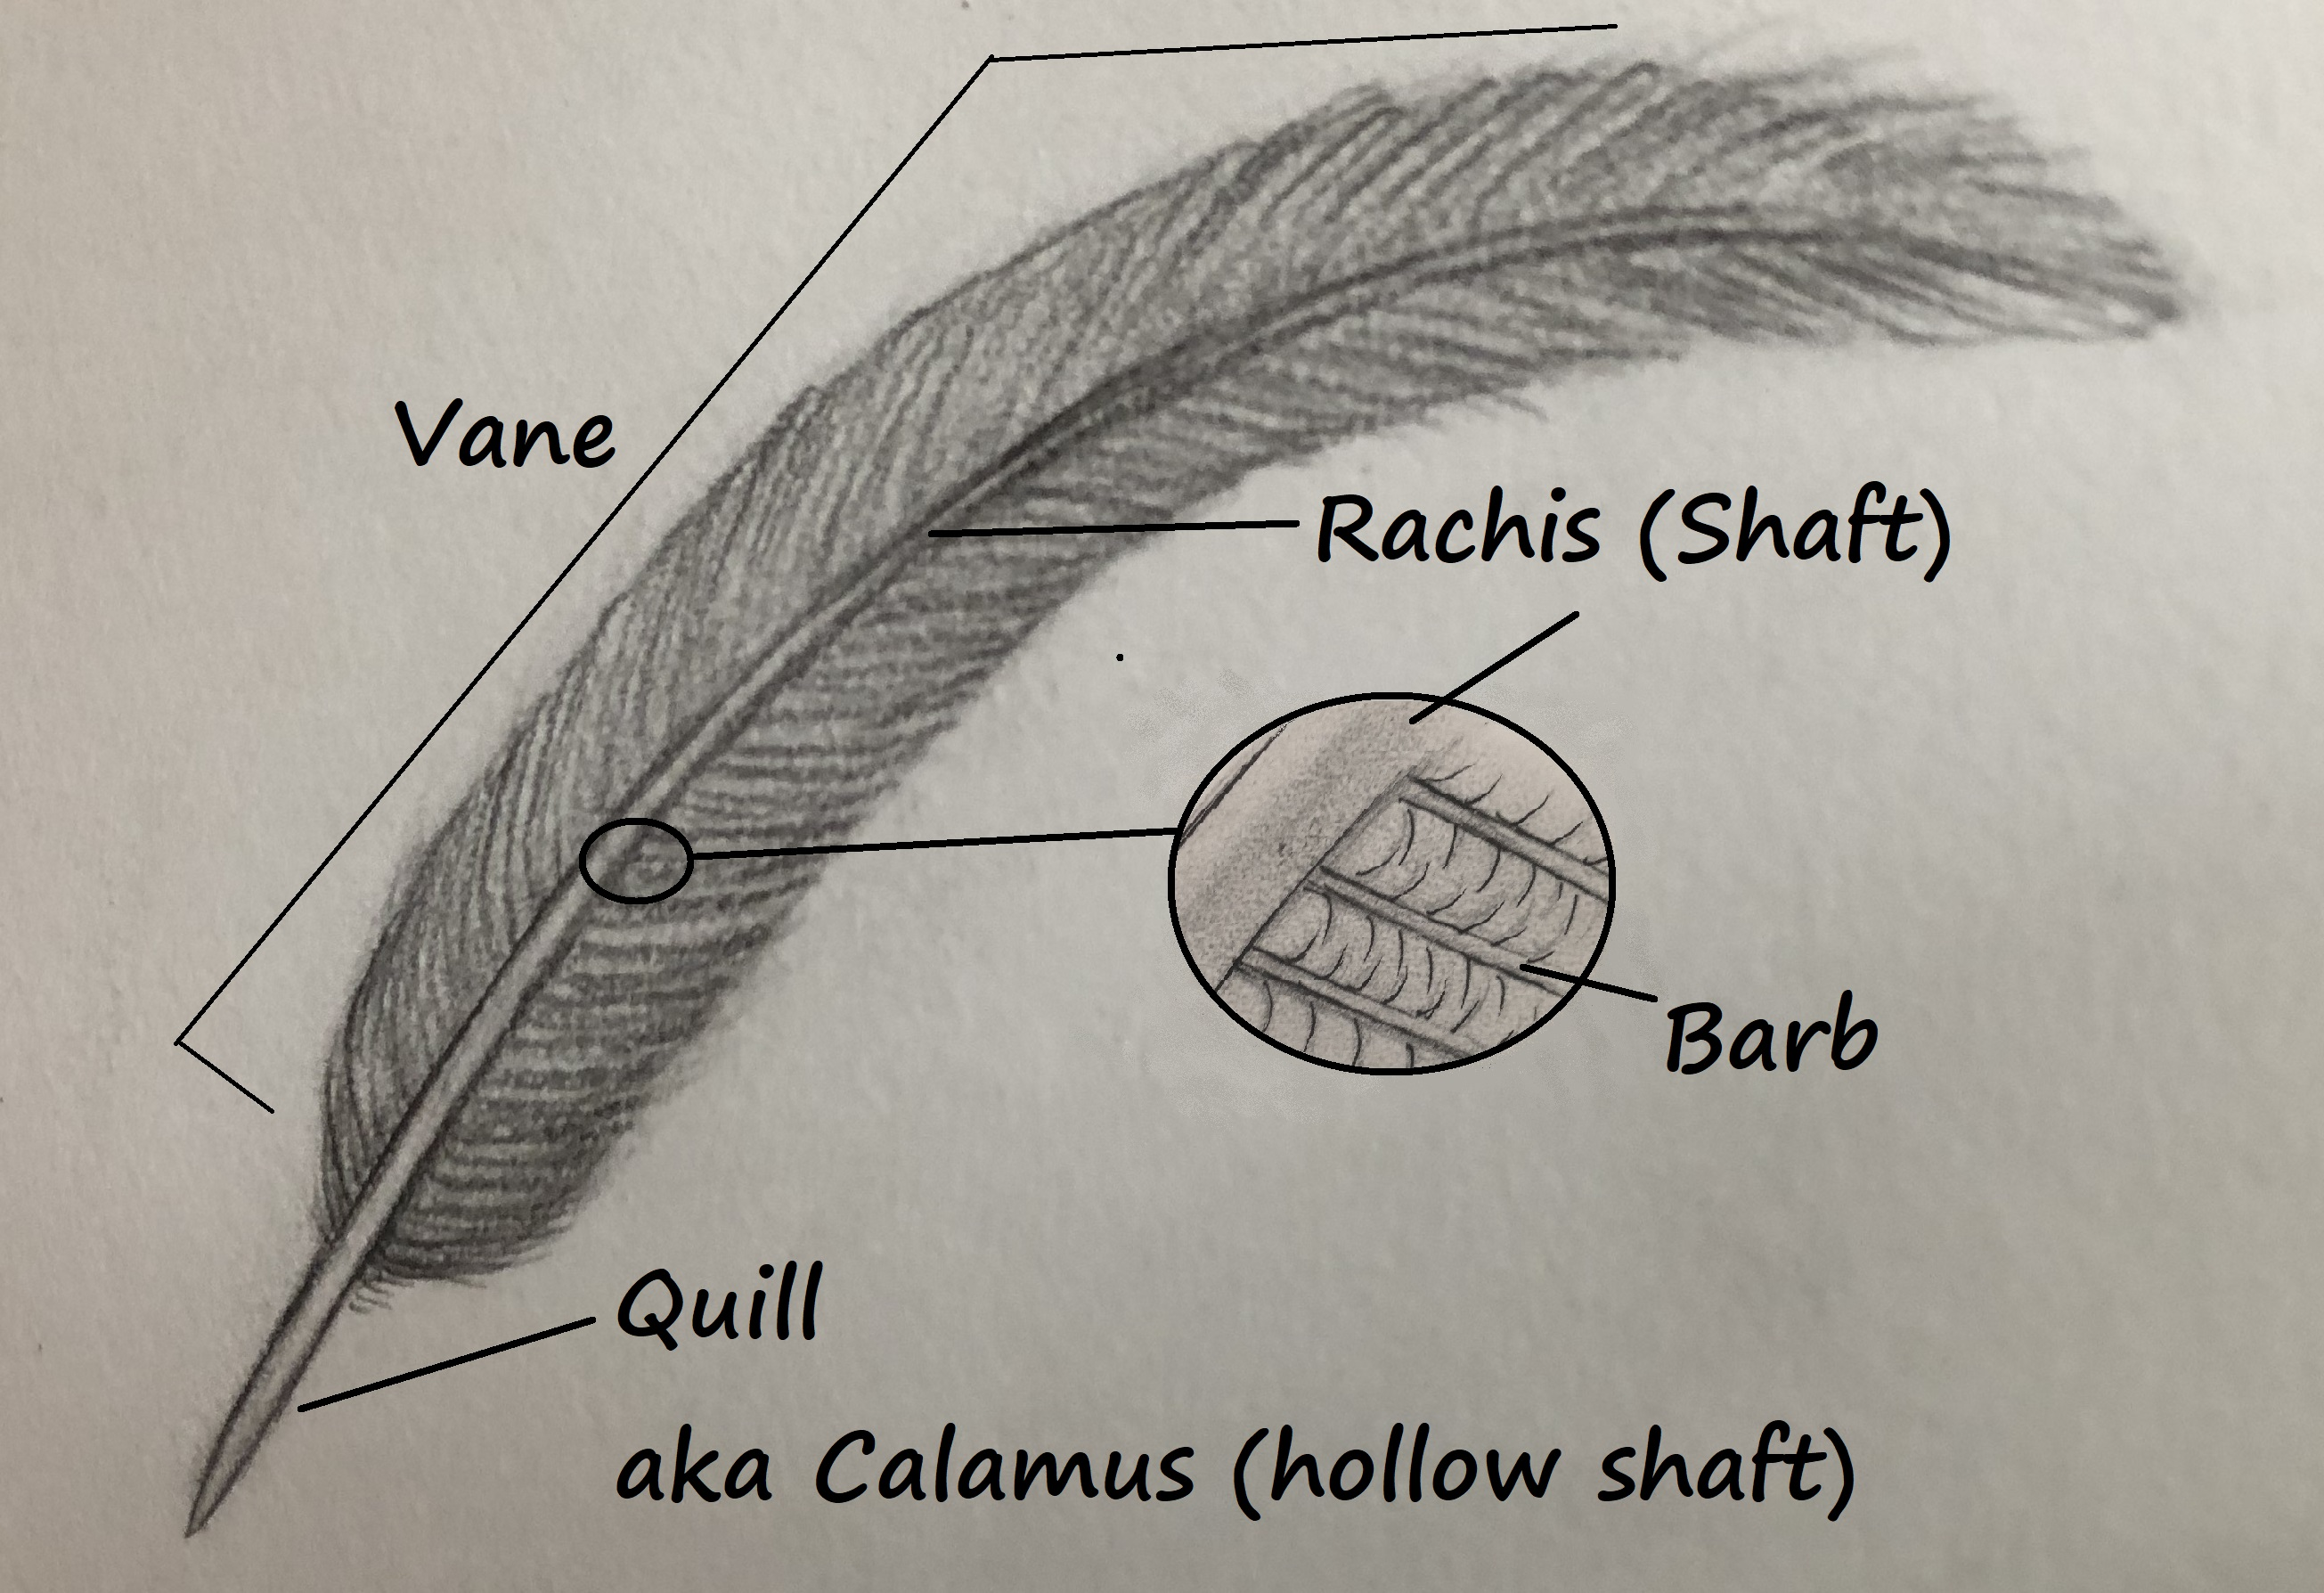 Feather terminology drawing.